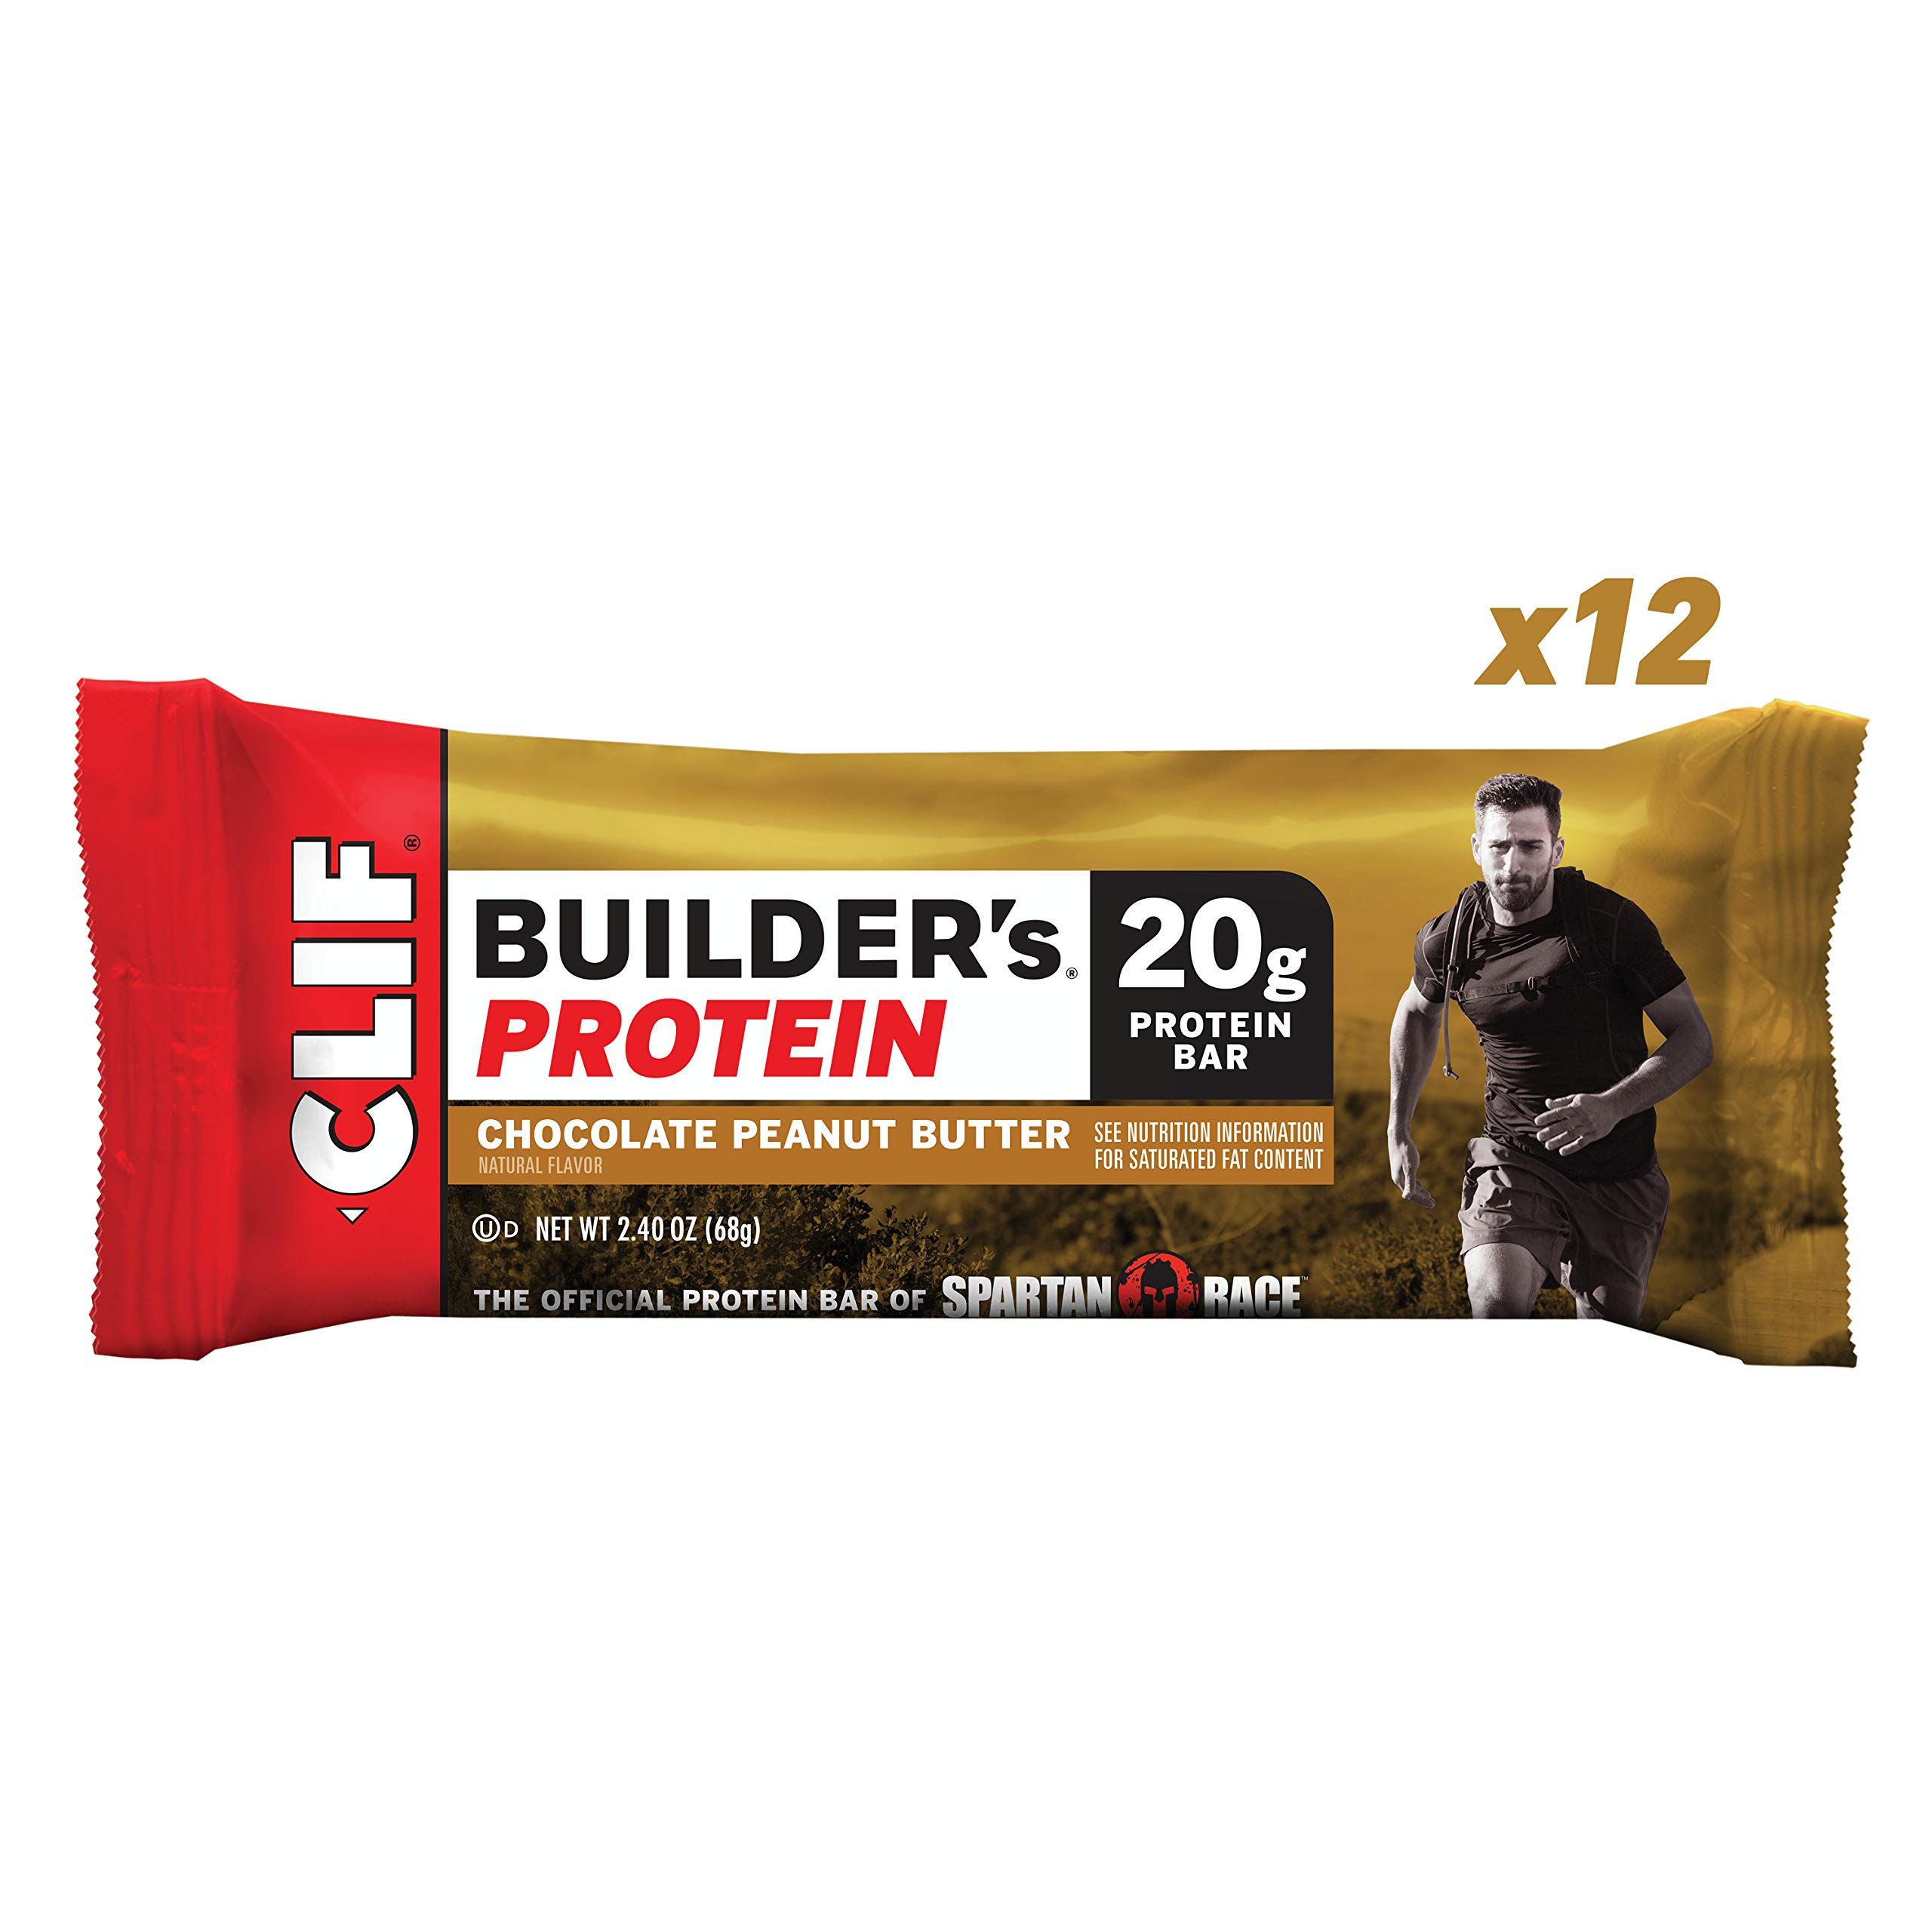 CLIF BUILDERS - Protein Bar - Chocolate Peanut Butter Flavor - (2.4 Ounce Non-